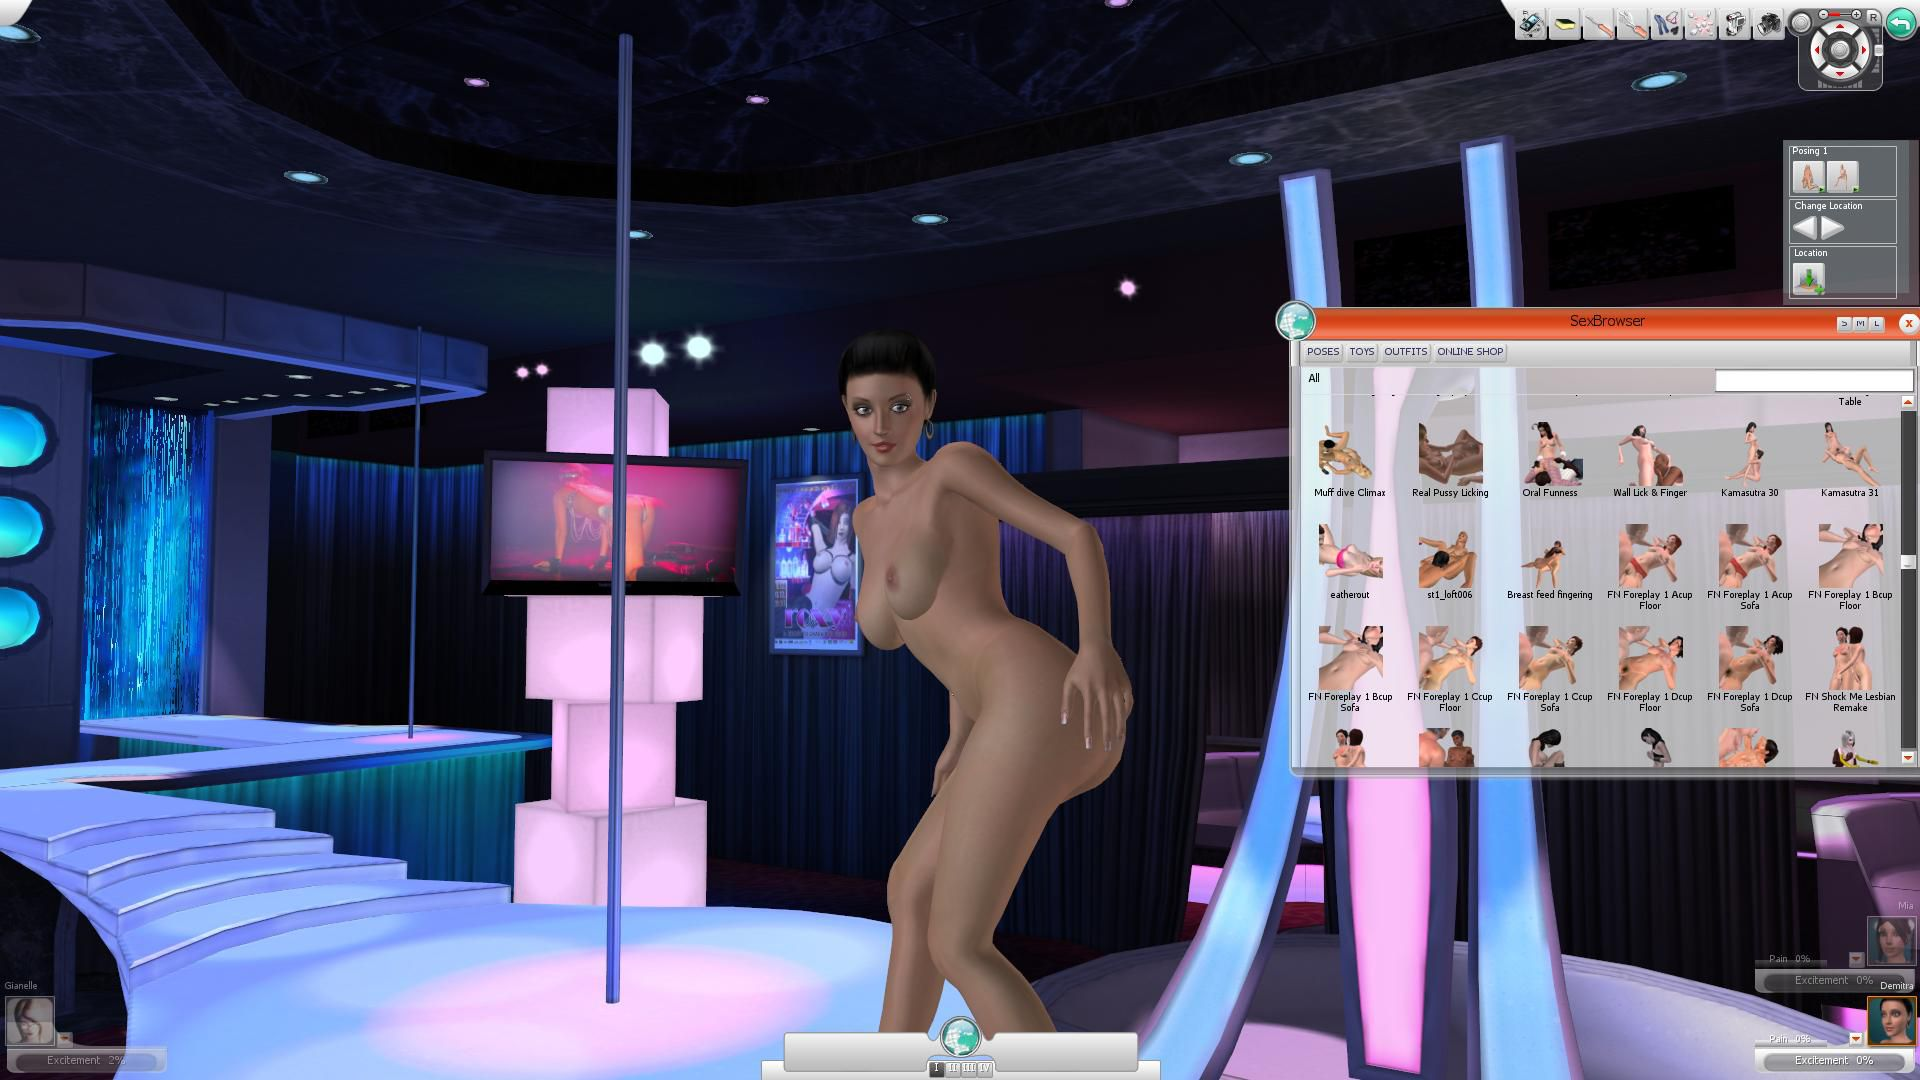 3D SexVilla 2 + Mod The Klub 17 version 7.4.9 + Official Mega packs for TK17 V7.X [2012] [Uncen] [3D, Simulator, ADV] [ENG] SexGame